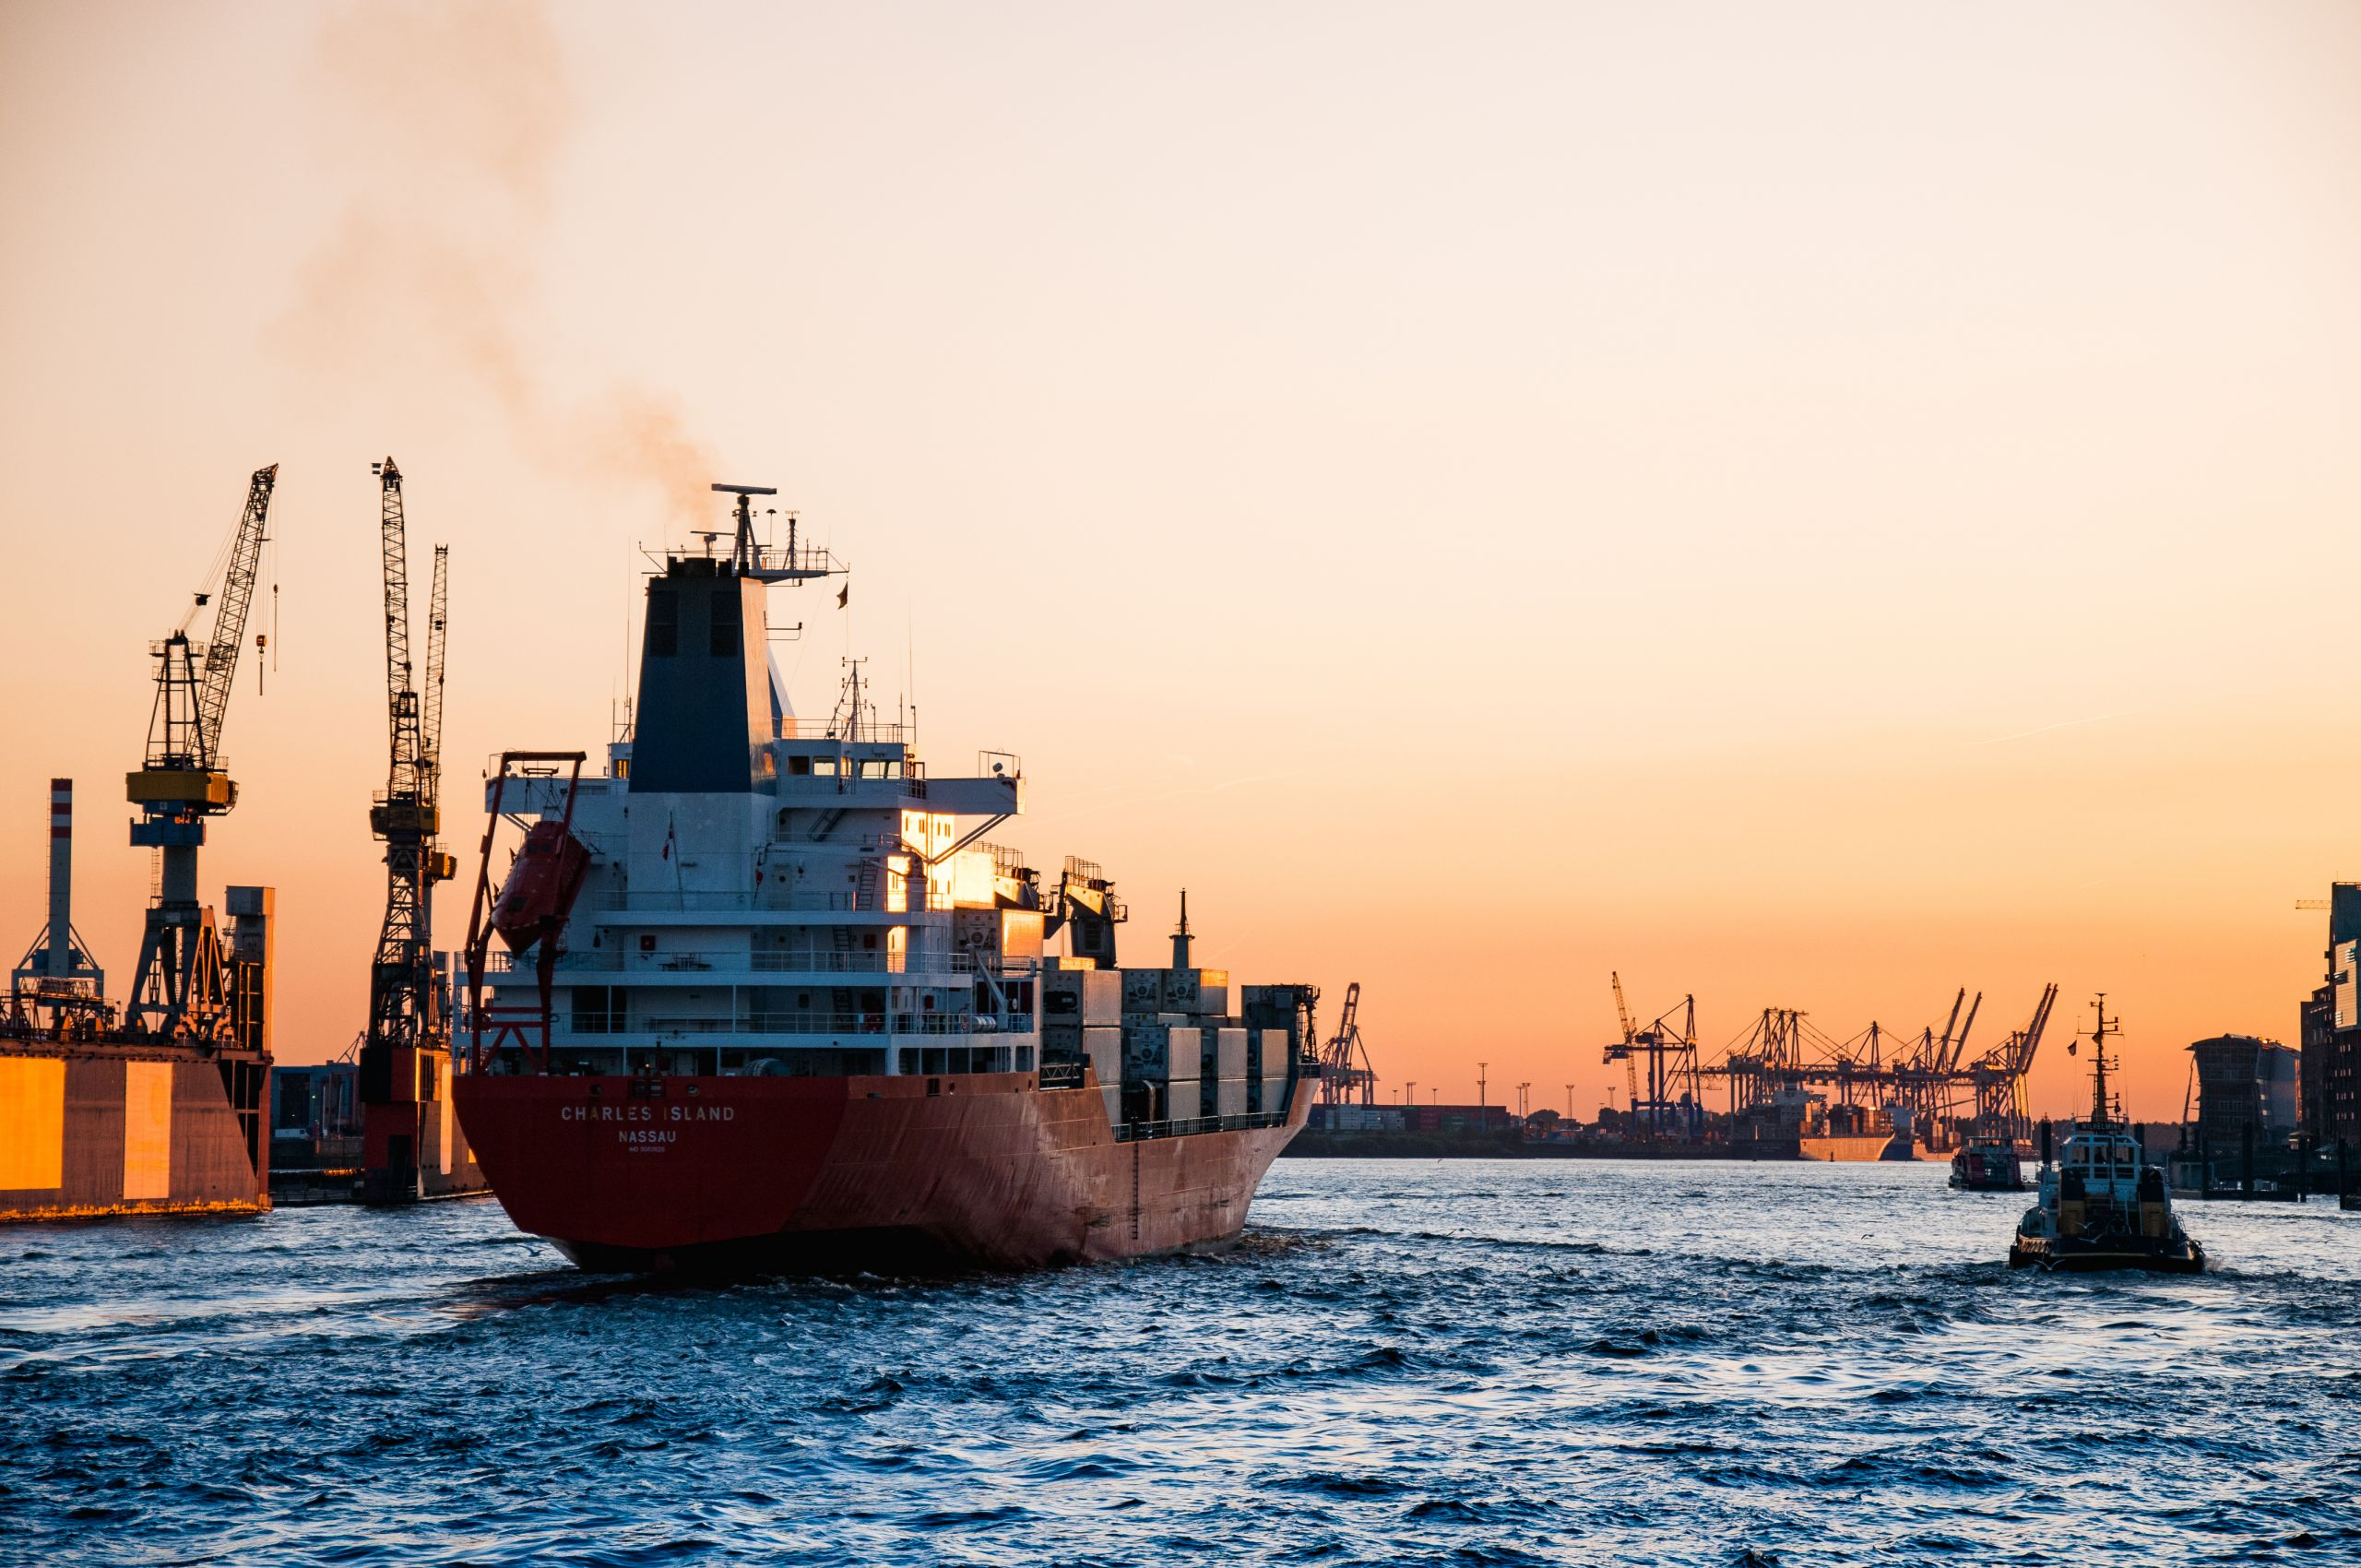 Sea freight transporting cargo